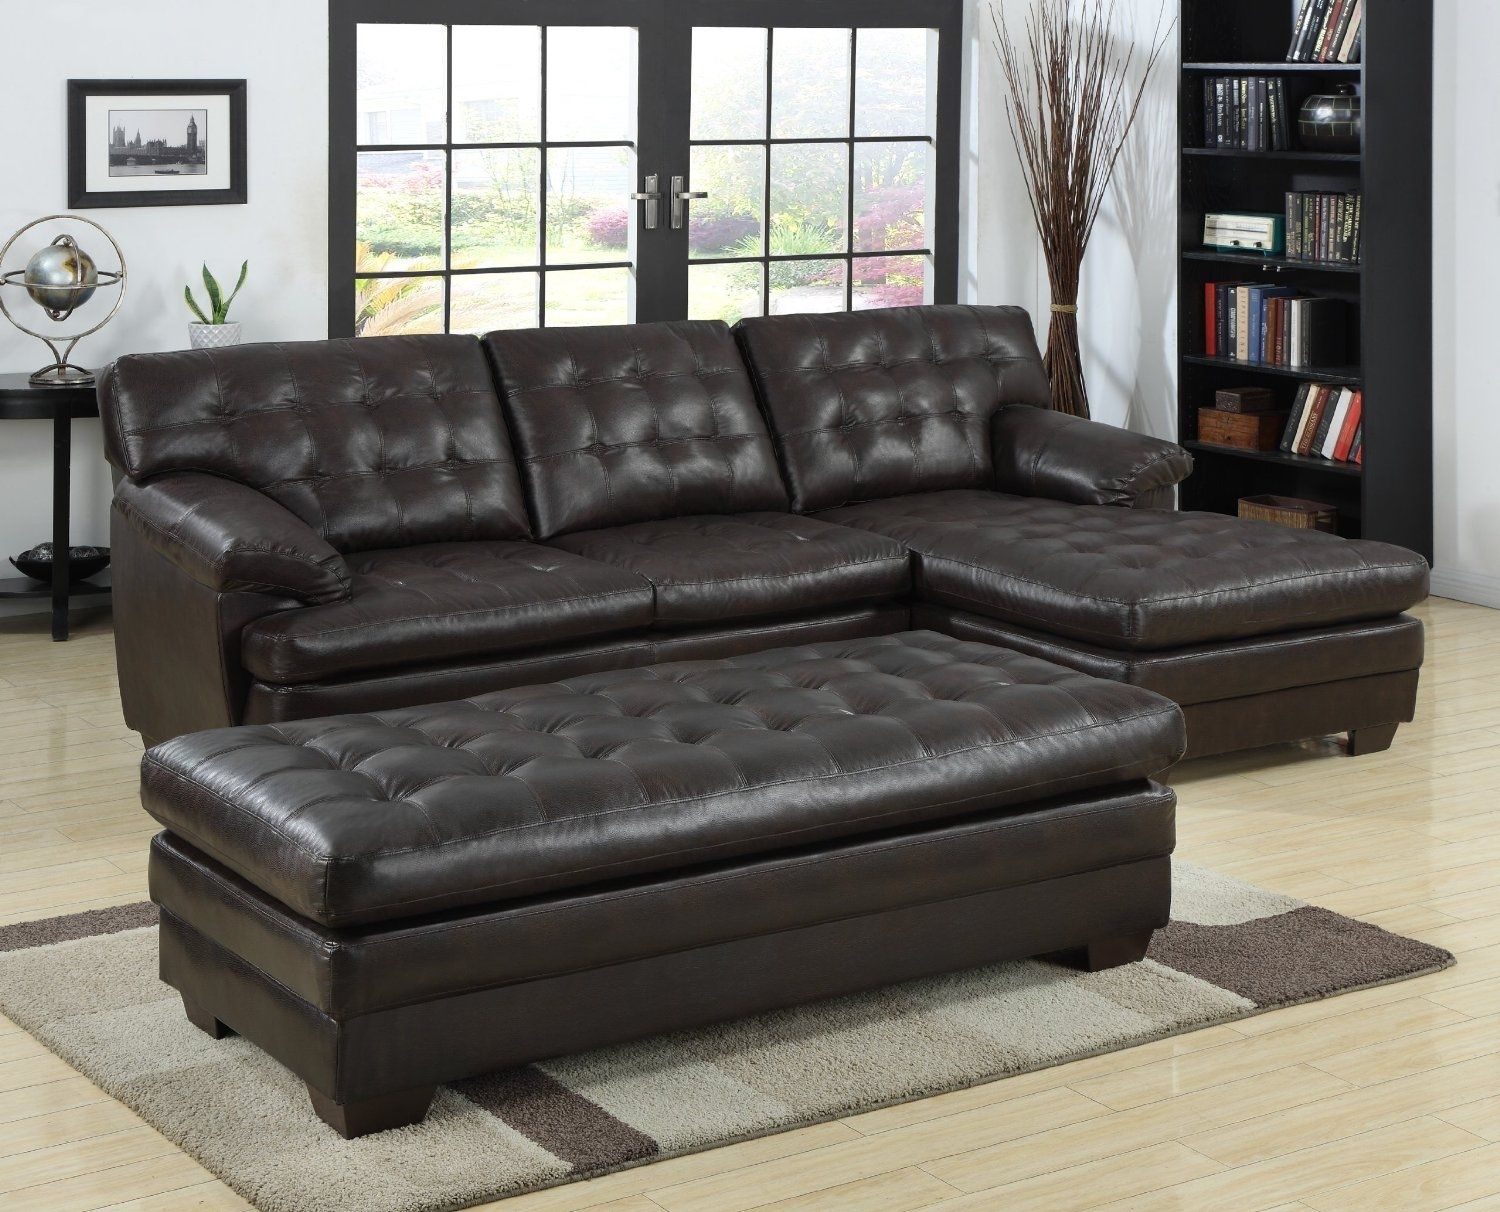 Black Tufted Leather Sectional Sofa With Chaise And Bench Seat Plus In Leather Sectionals With Chaise And Ottoman (Image 3 of 10)